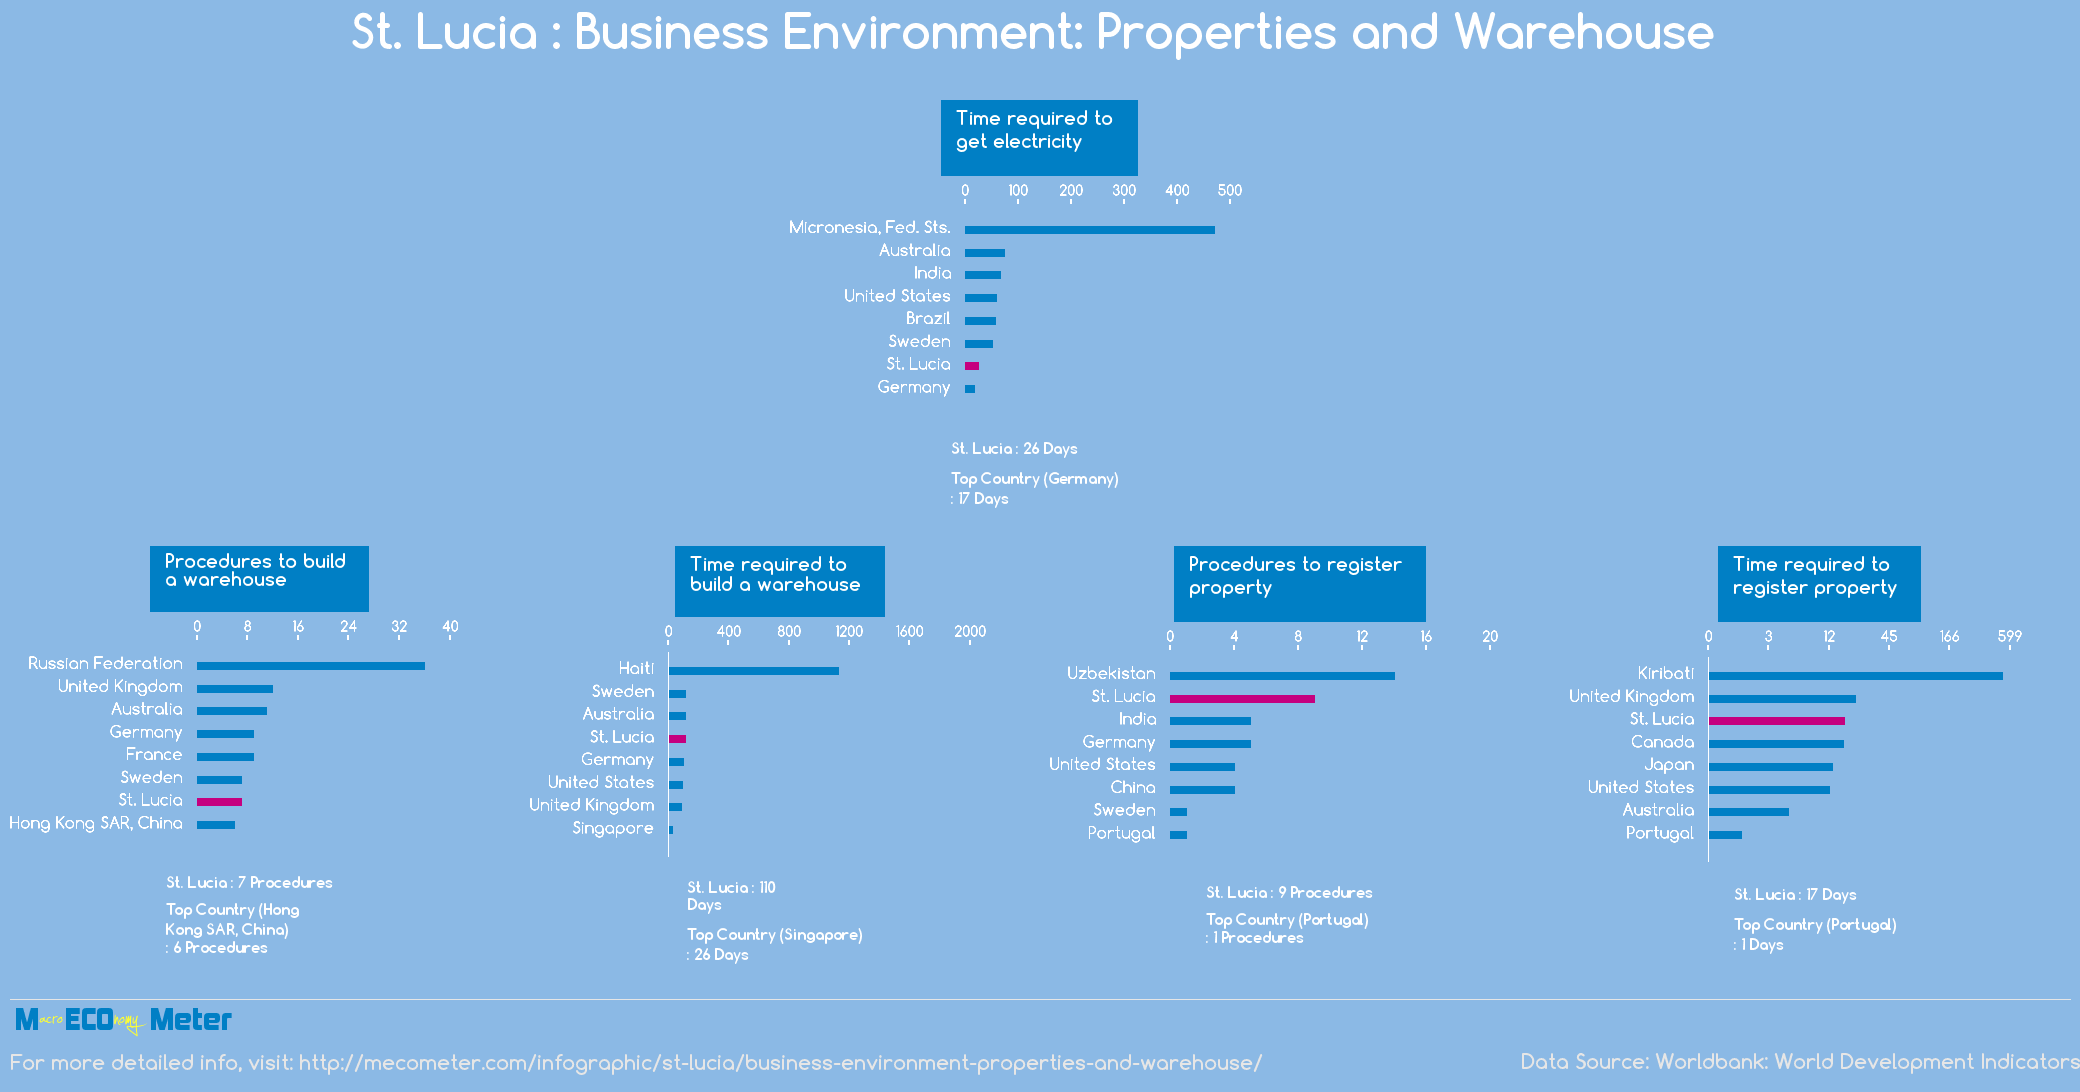 St. Lucia : Business Environment: Properties and Warehouse